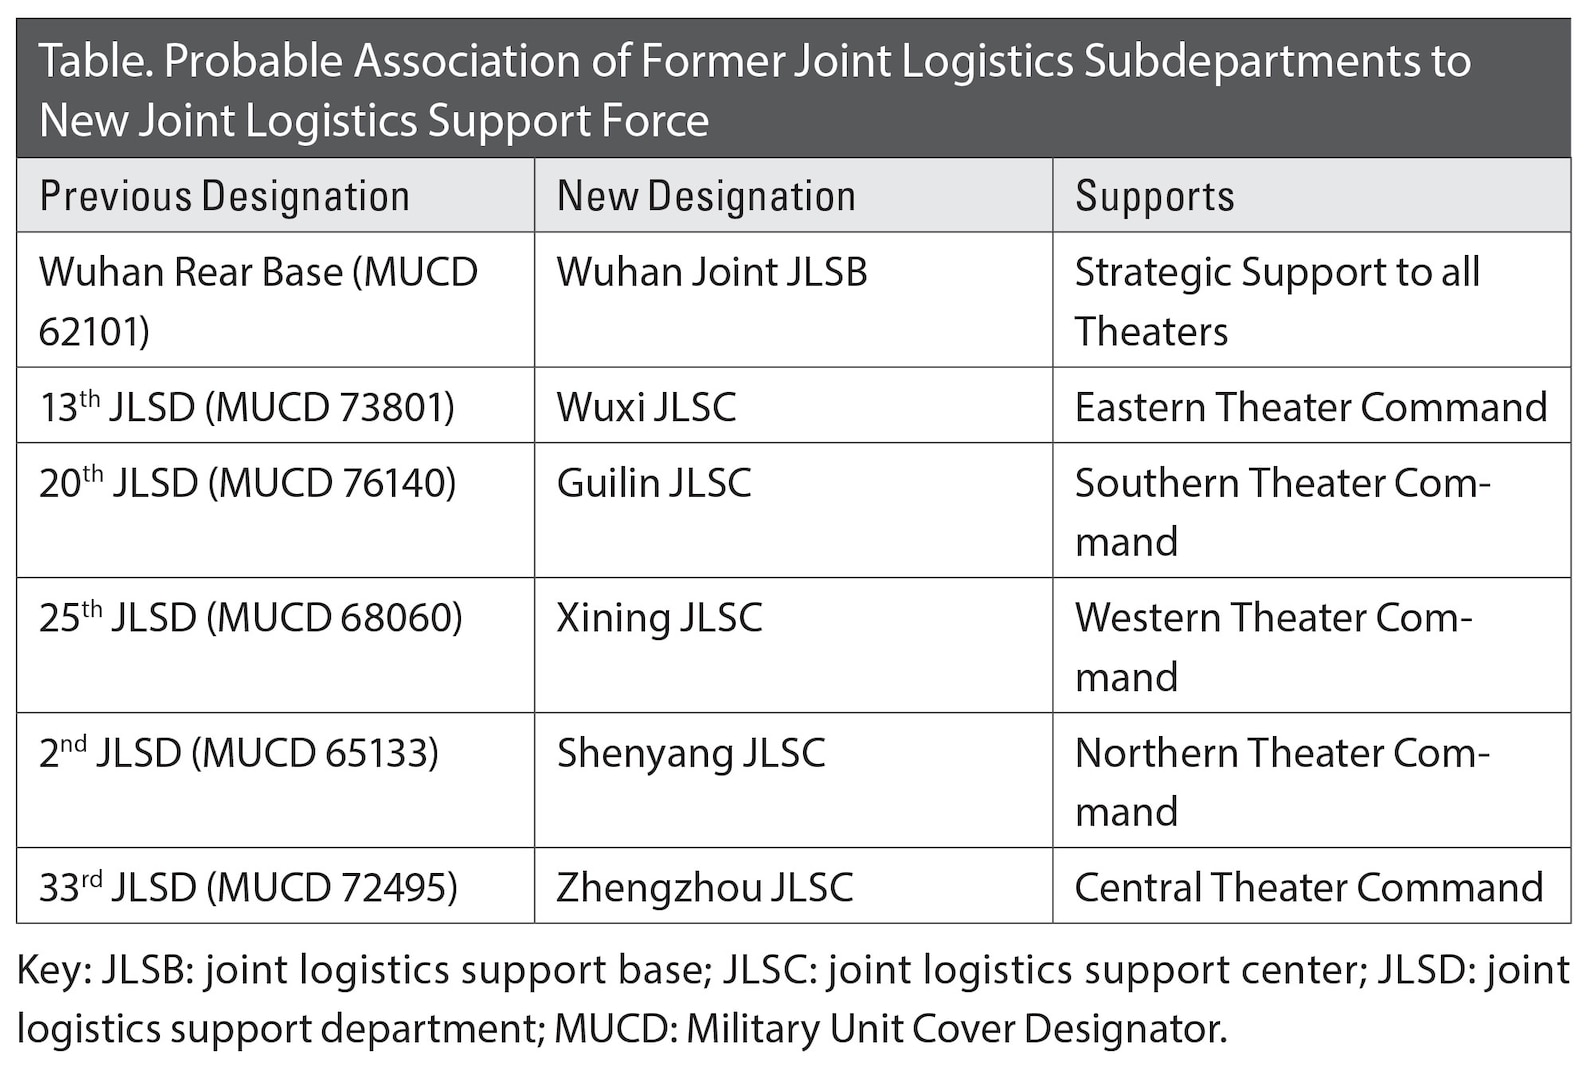 Table. Probable Association of Former Joint Logistics Subdepartments to New Joint Logistics Support Force